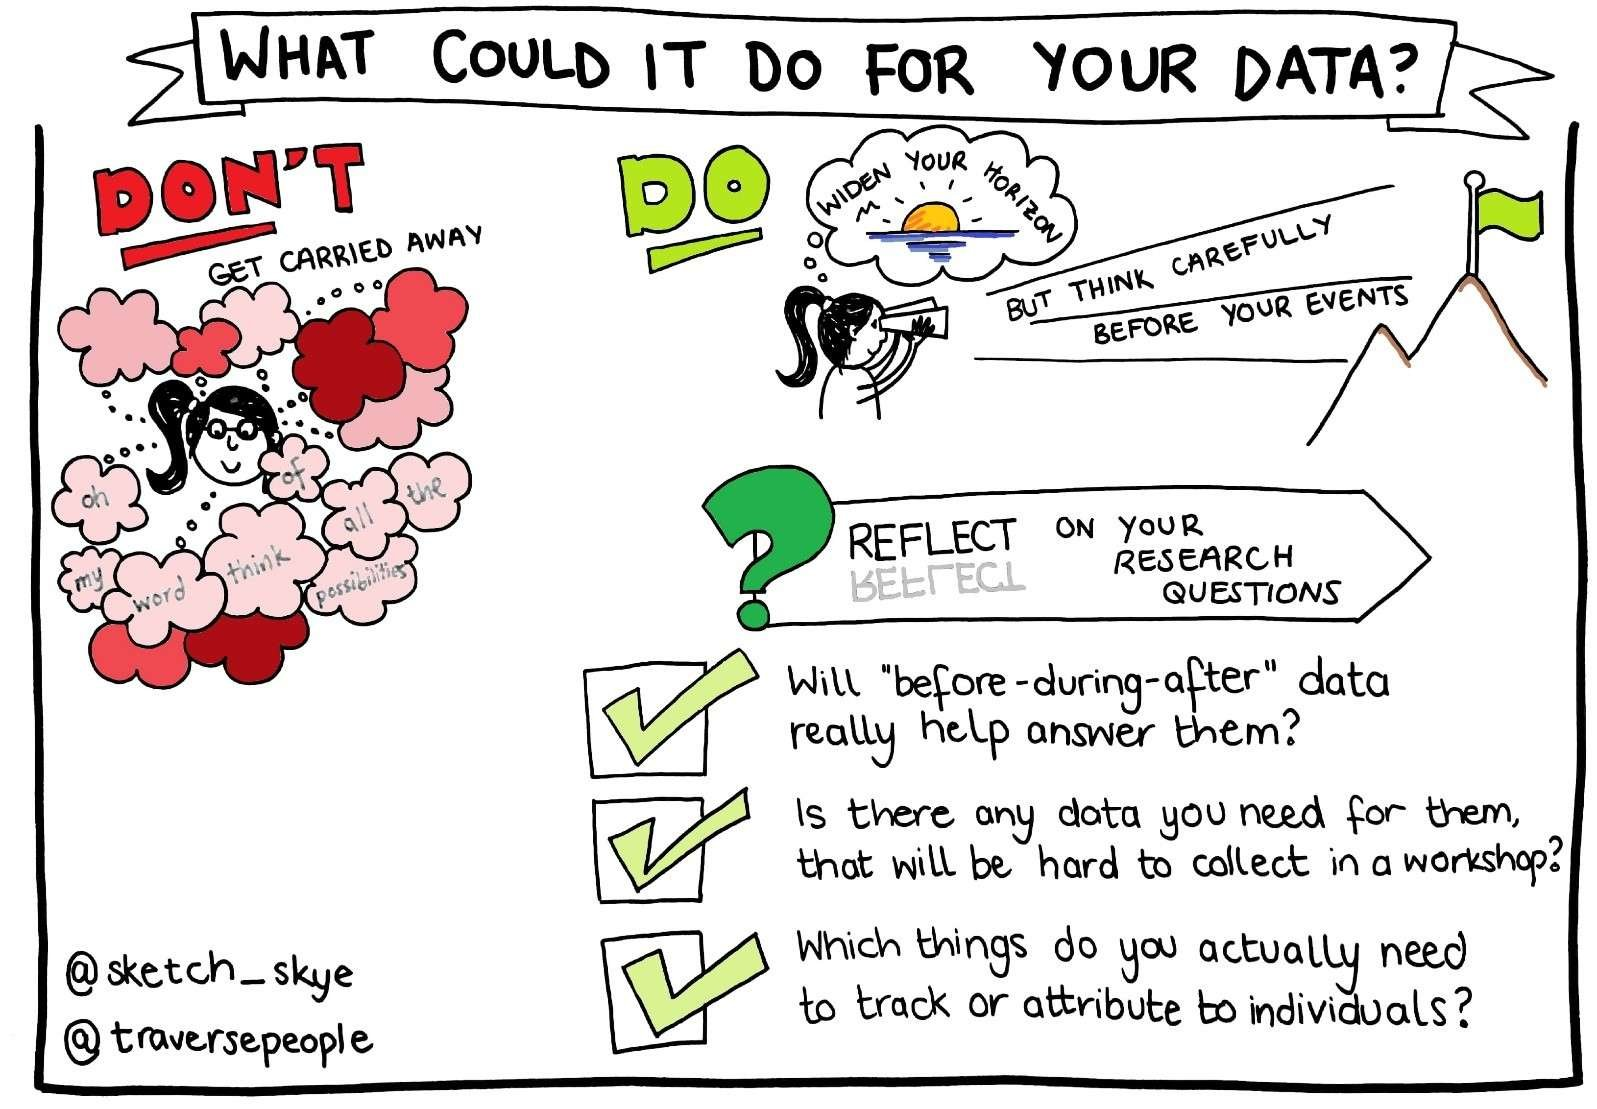 What could it do for your data.jpg